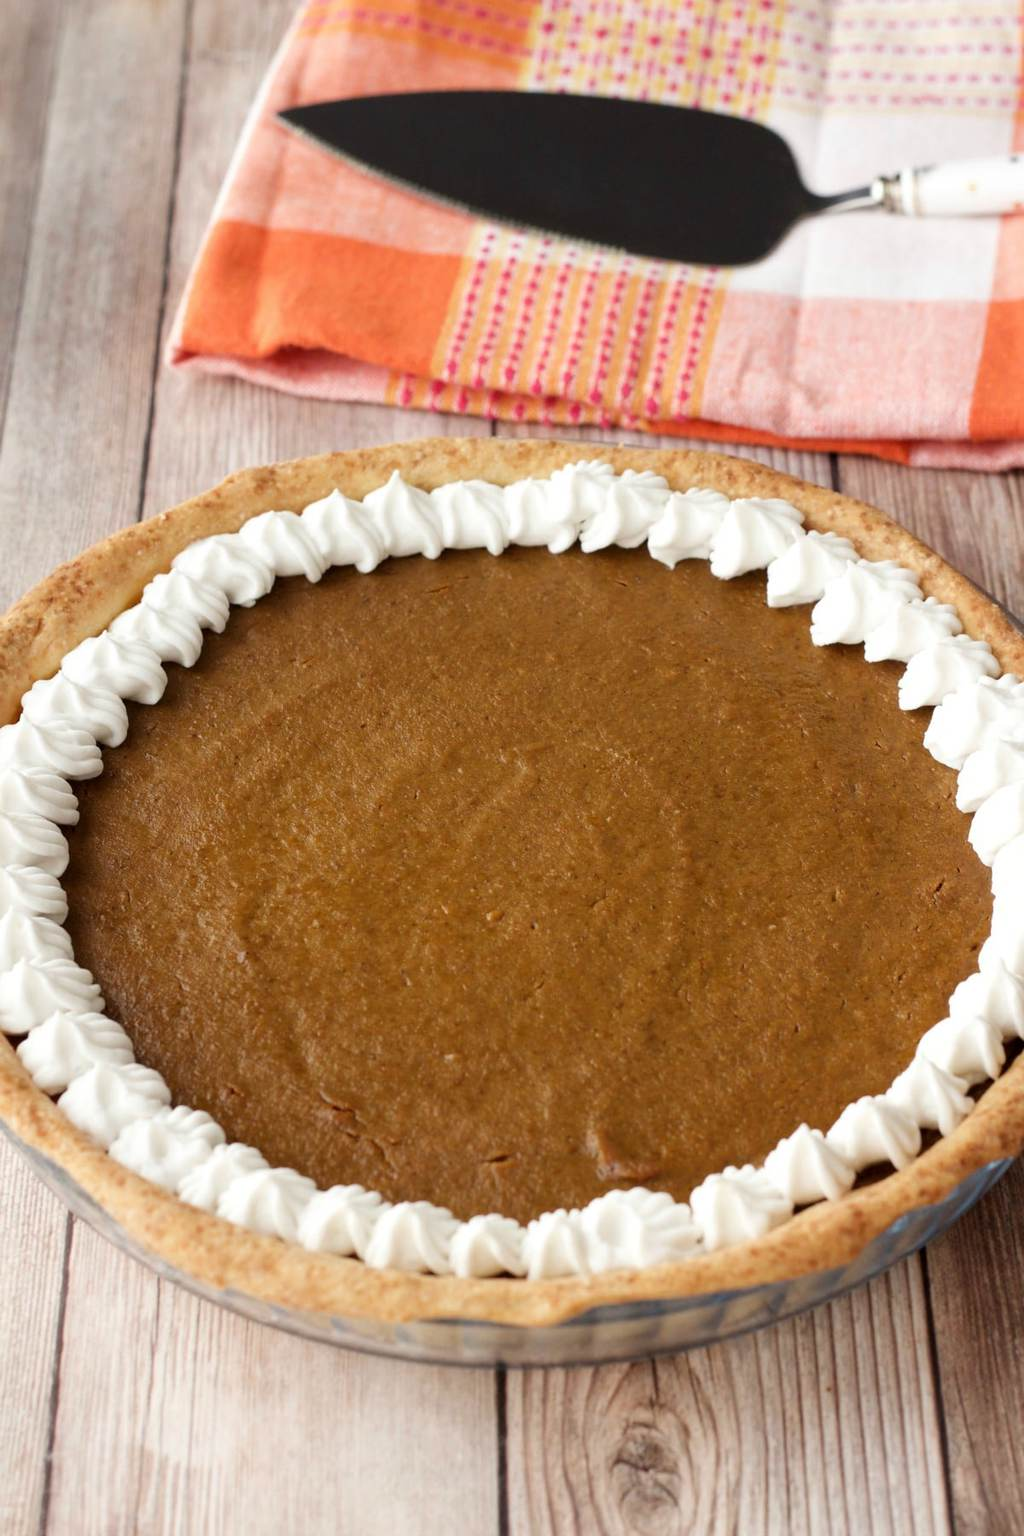 Freshly baked vegan pumpkin pie with whipped cream.